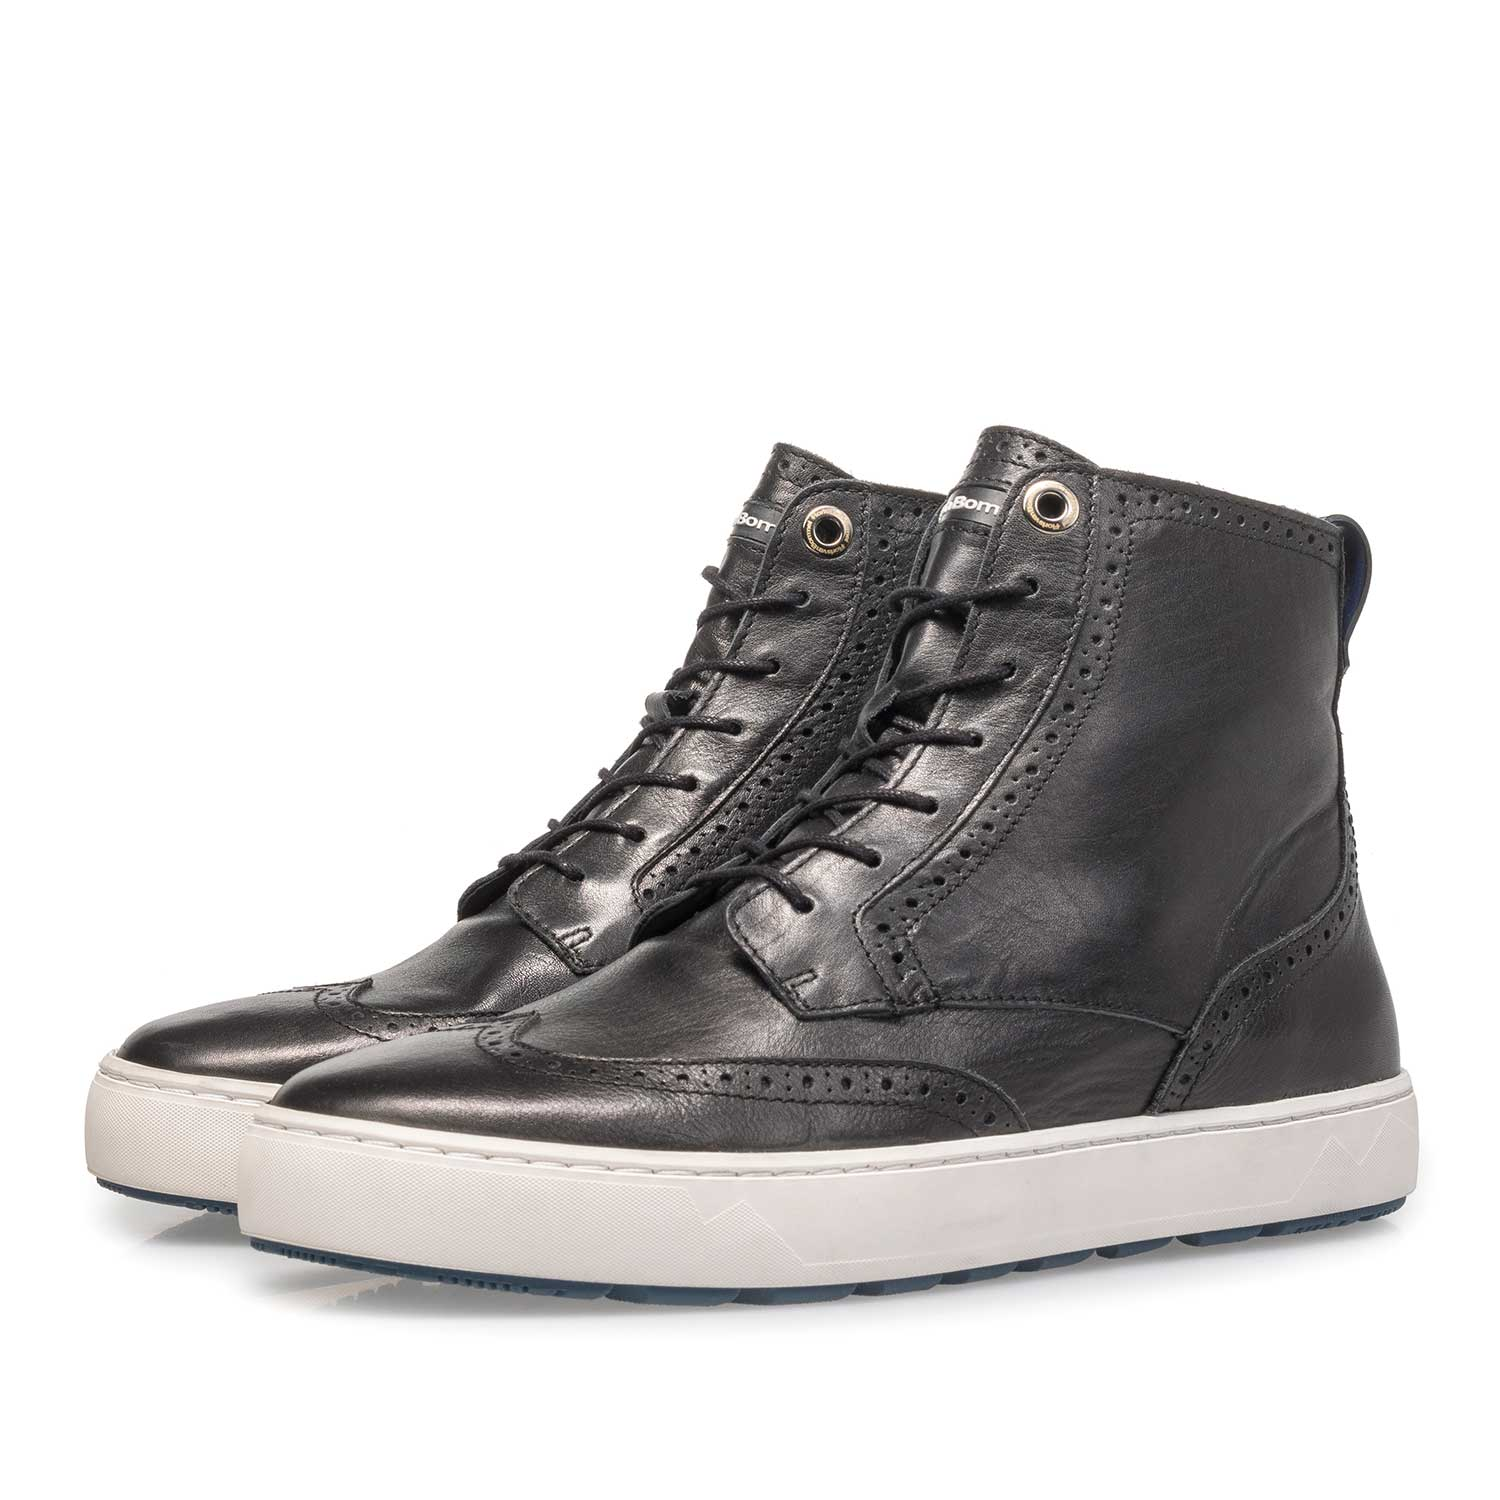 85286/03 - Black mid-high nappa leather sneaker